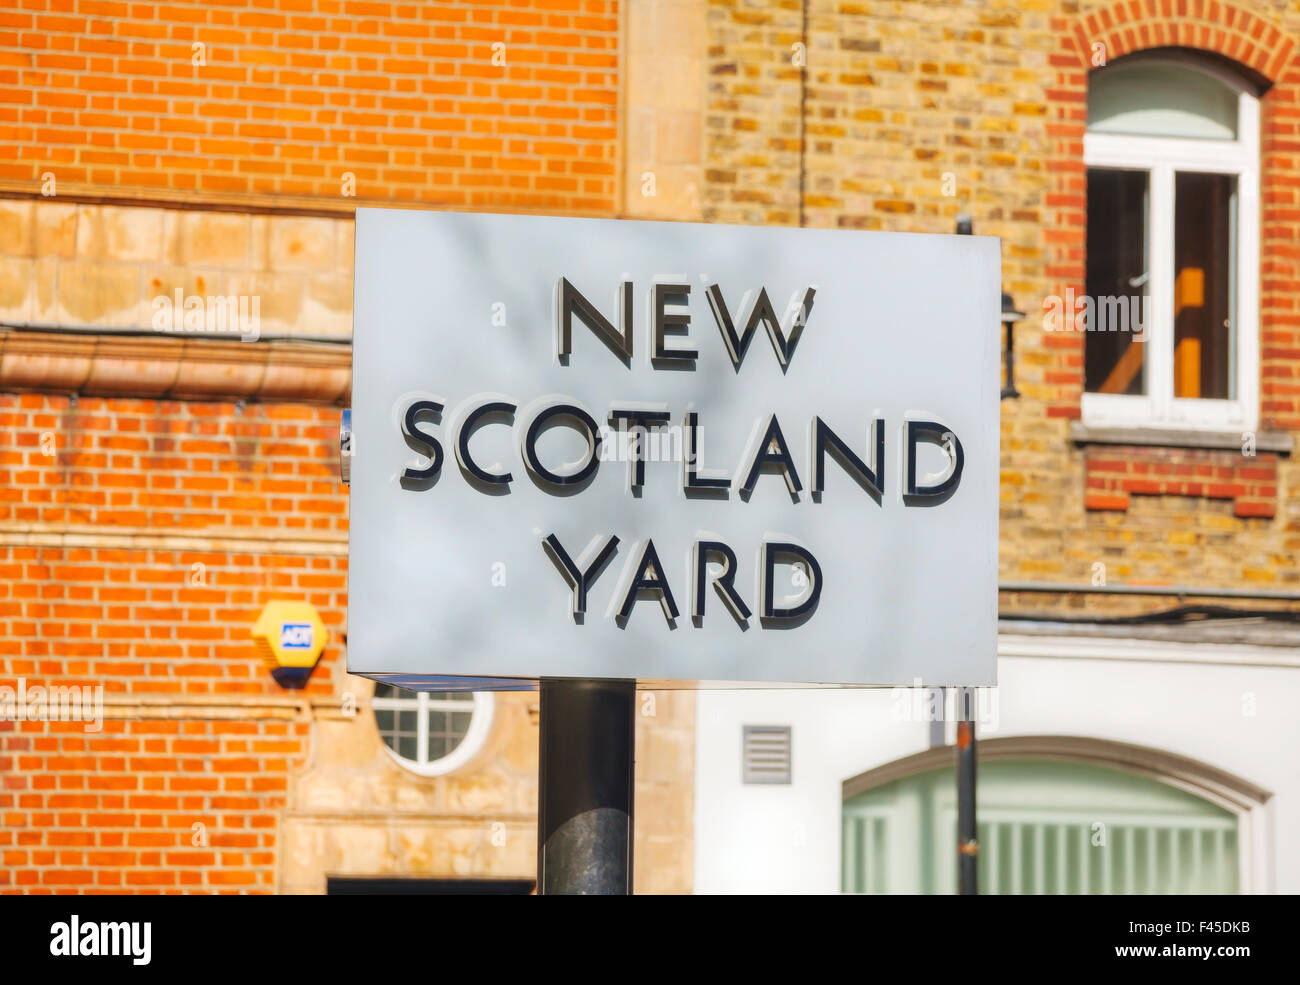 Famous New Scotland Yard sign in London - Stock Image